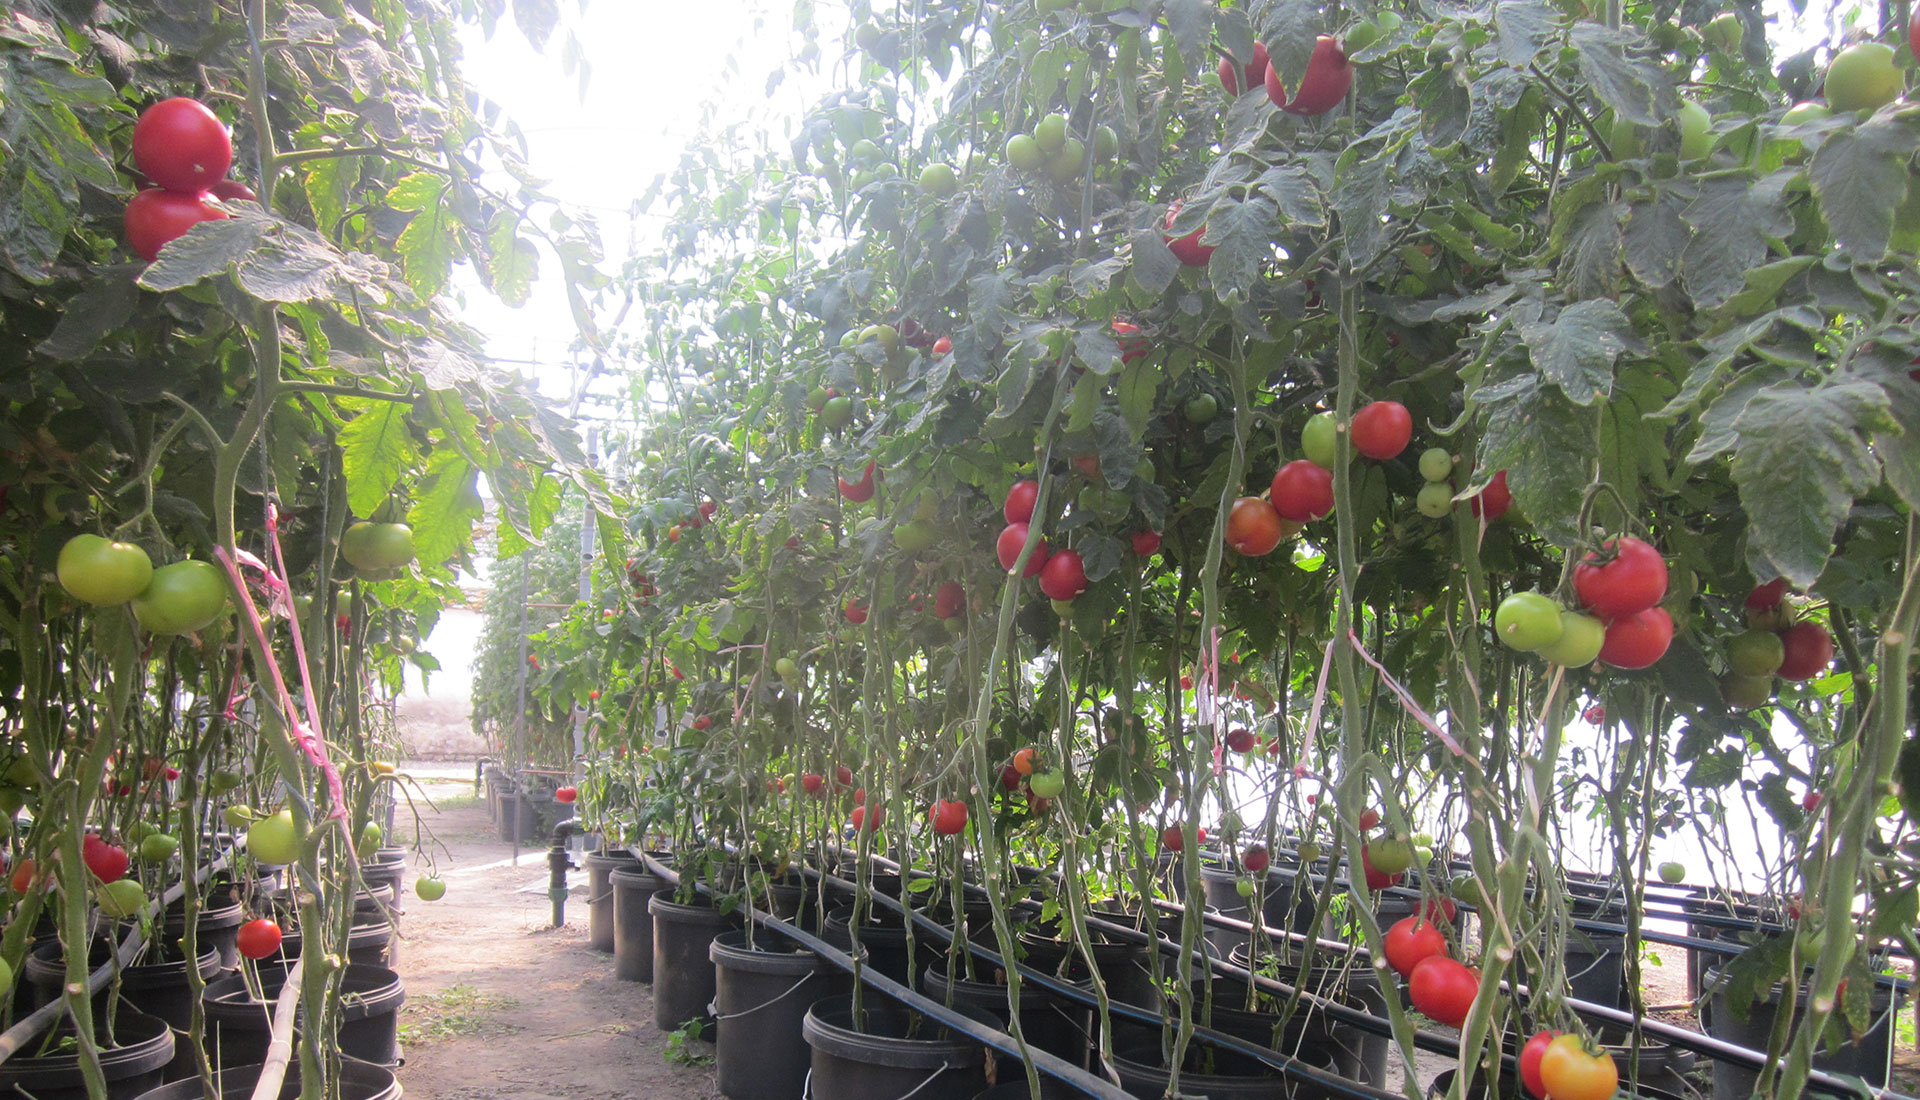 Smothery Aquaponic System Header Roma Tomato Plant Spacing Indeterminate Tomato Plant Spacing How To Grow Tomato houzz-03 Tomato Plant Spacing